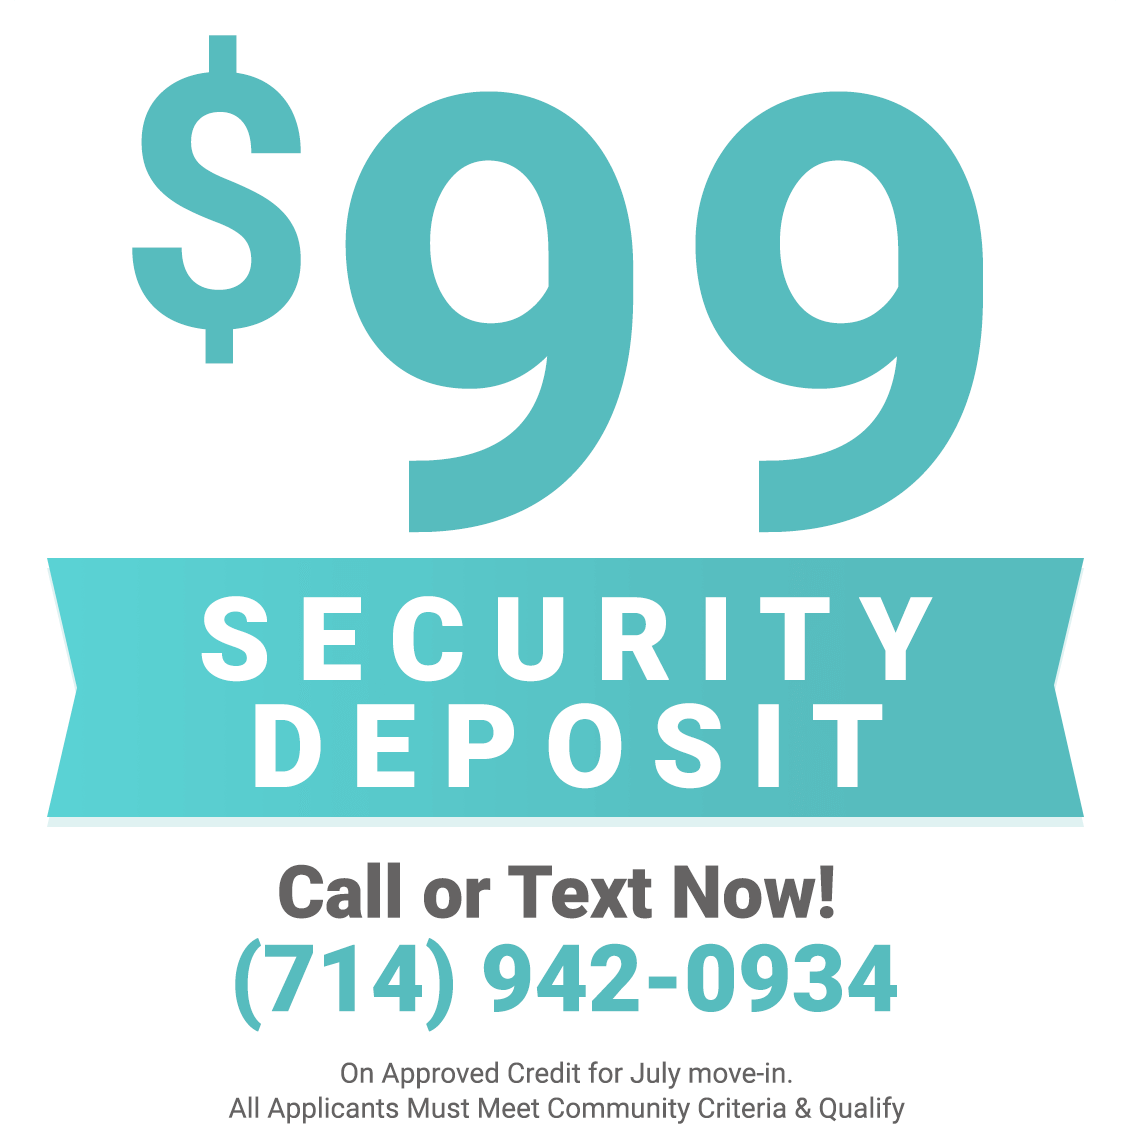 $99 Security Deposit On Approved Credit for July Move In